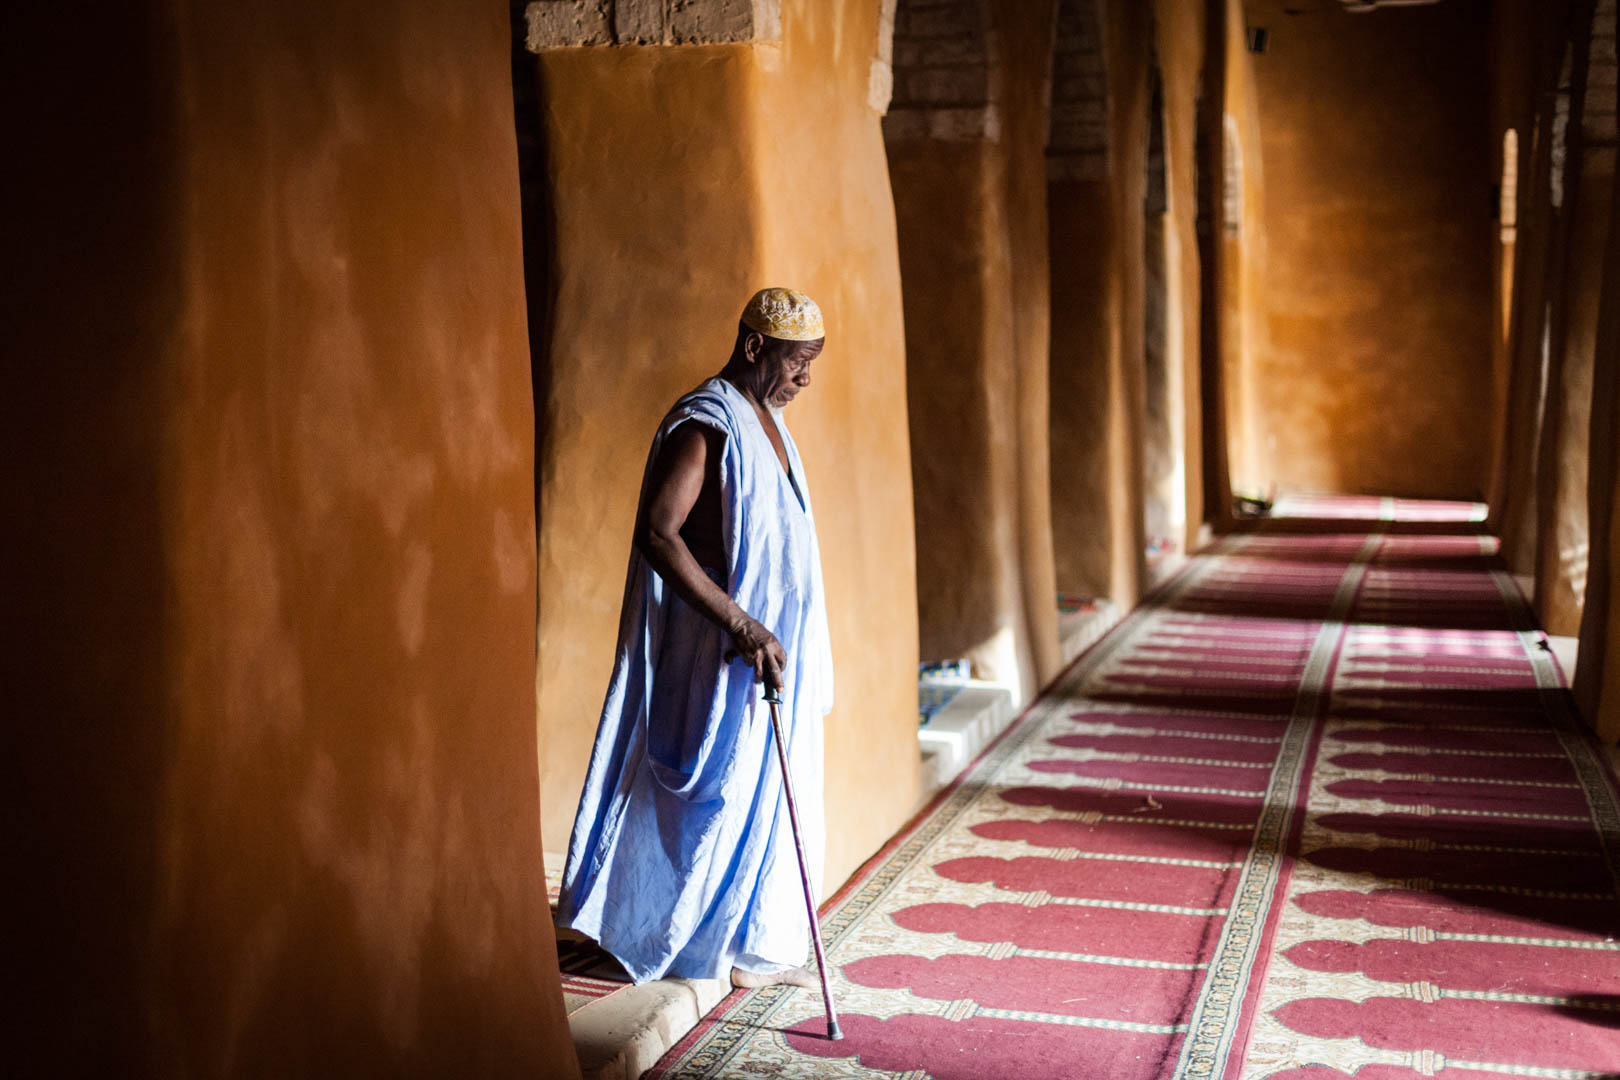 The Imam of the Djingere-ber mosque in Timbuktu walks thorugh the main prayer hall of the mosque.The three big mosques of Timbuktu feature a unique clay architecture and are protected UNESCO world-heritage sites in Mali.